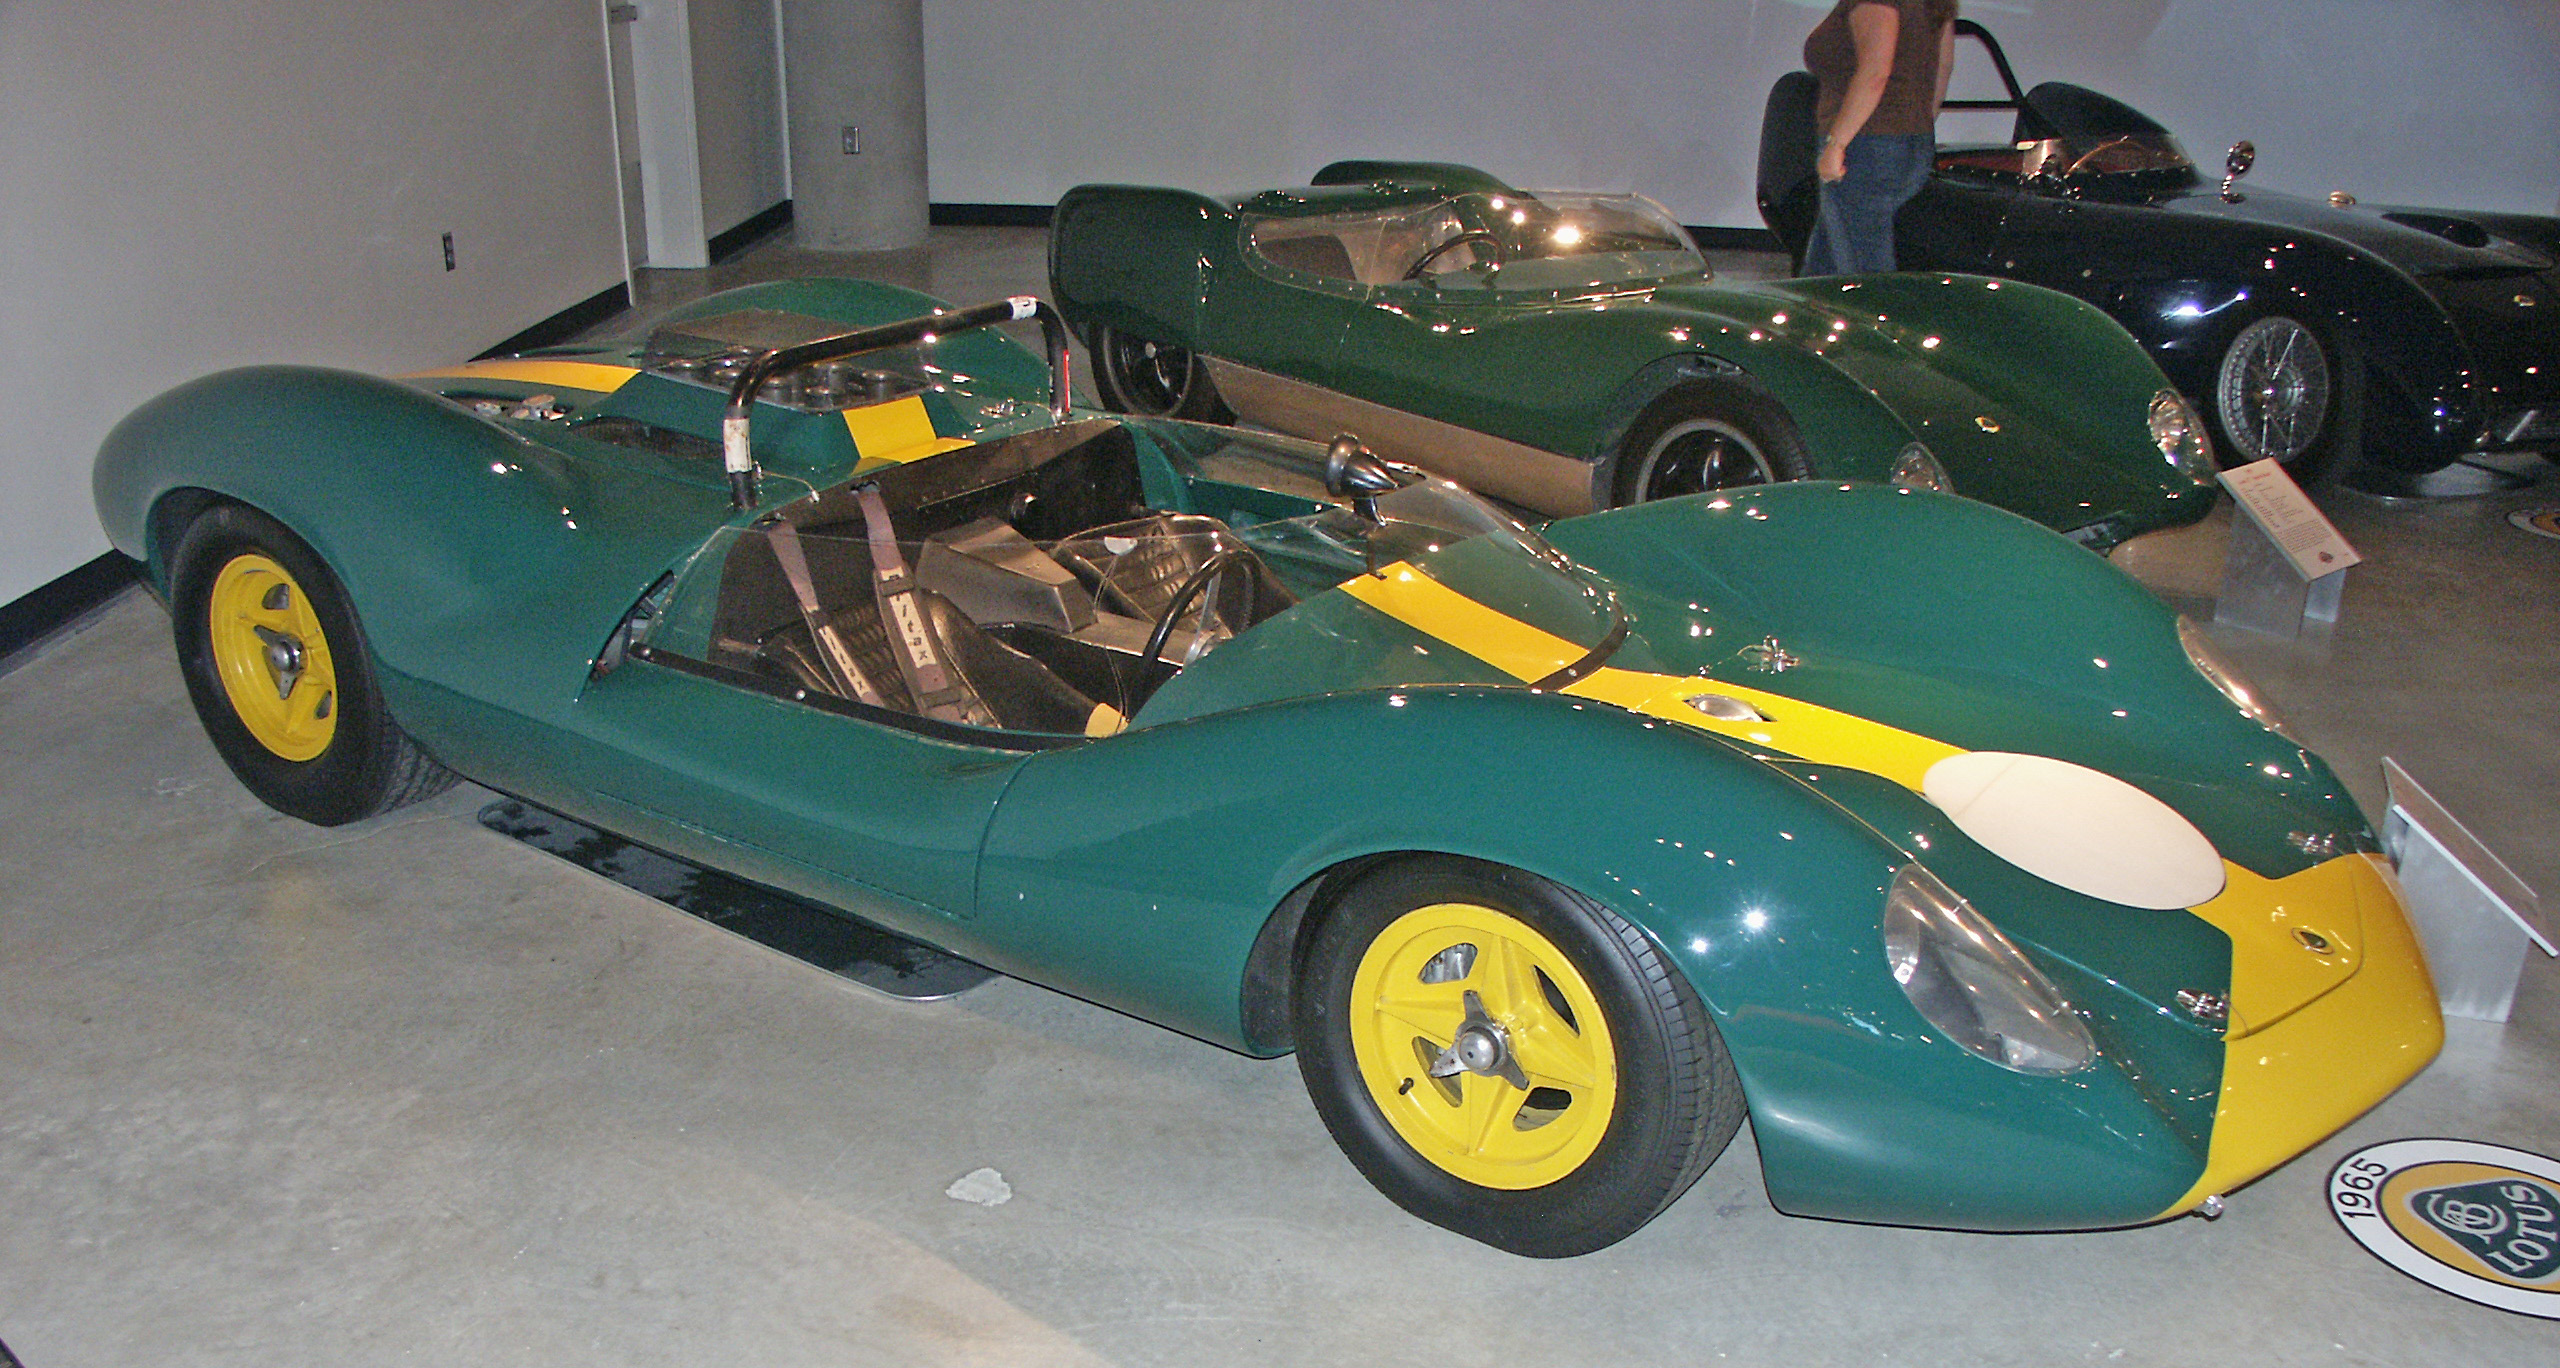 File:Lotus30.jpg - Wikimedia Commons